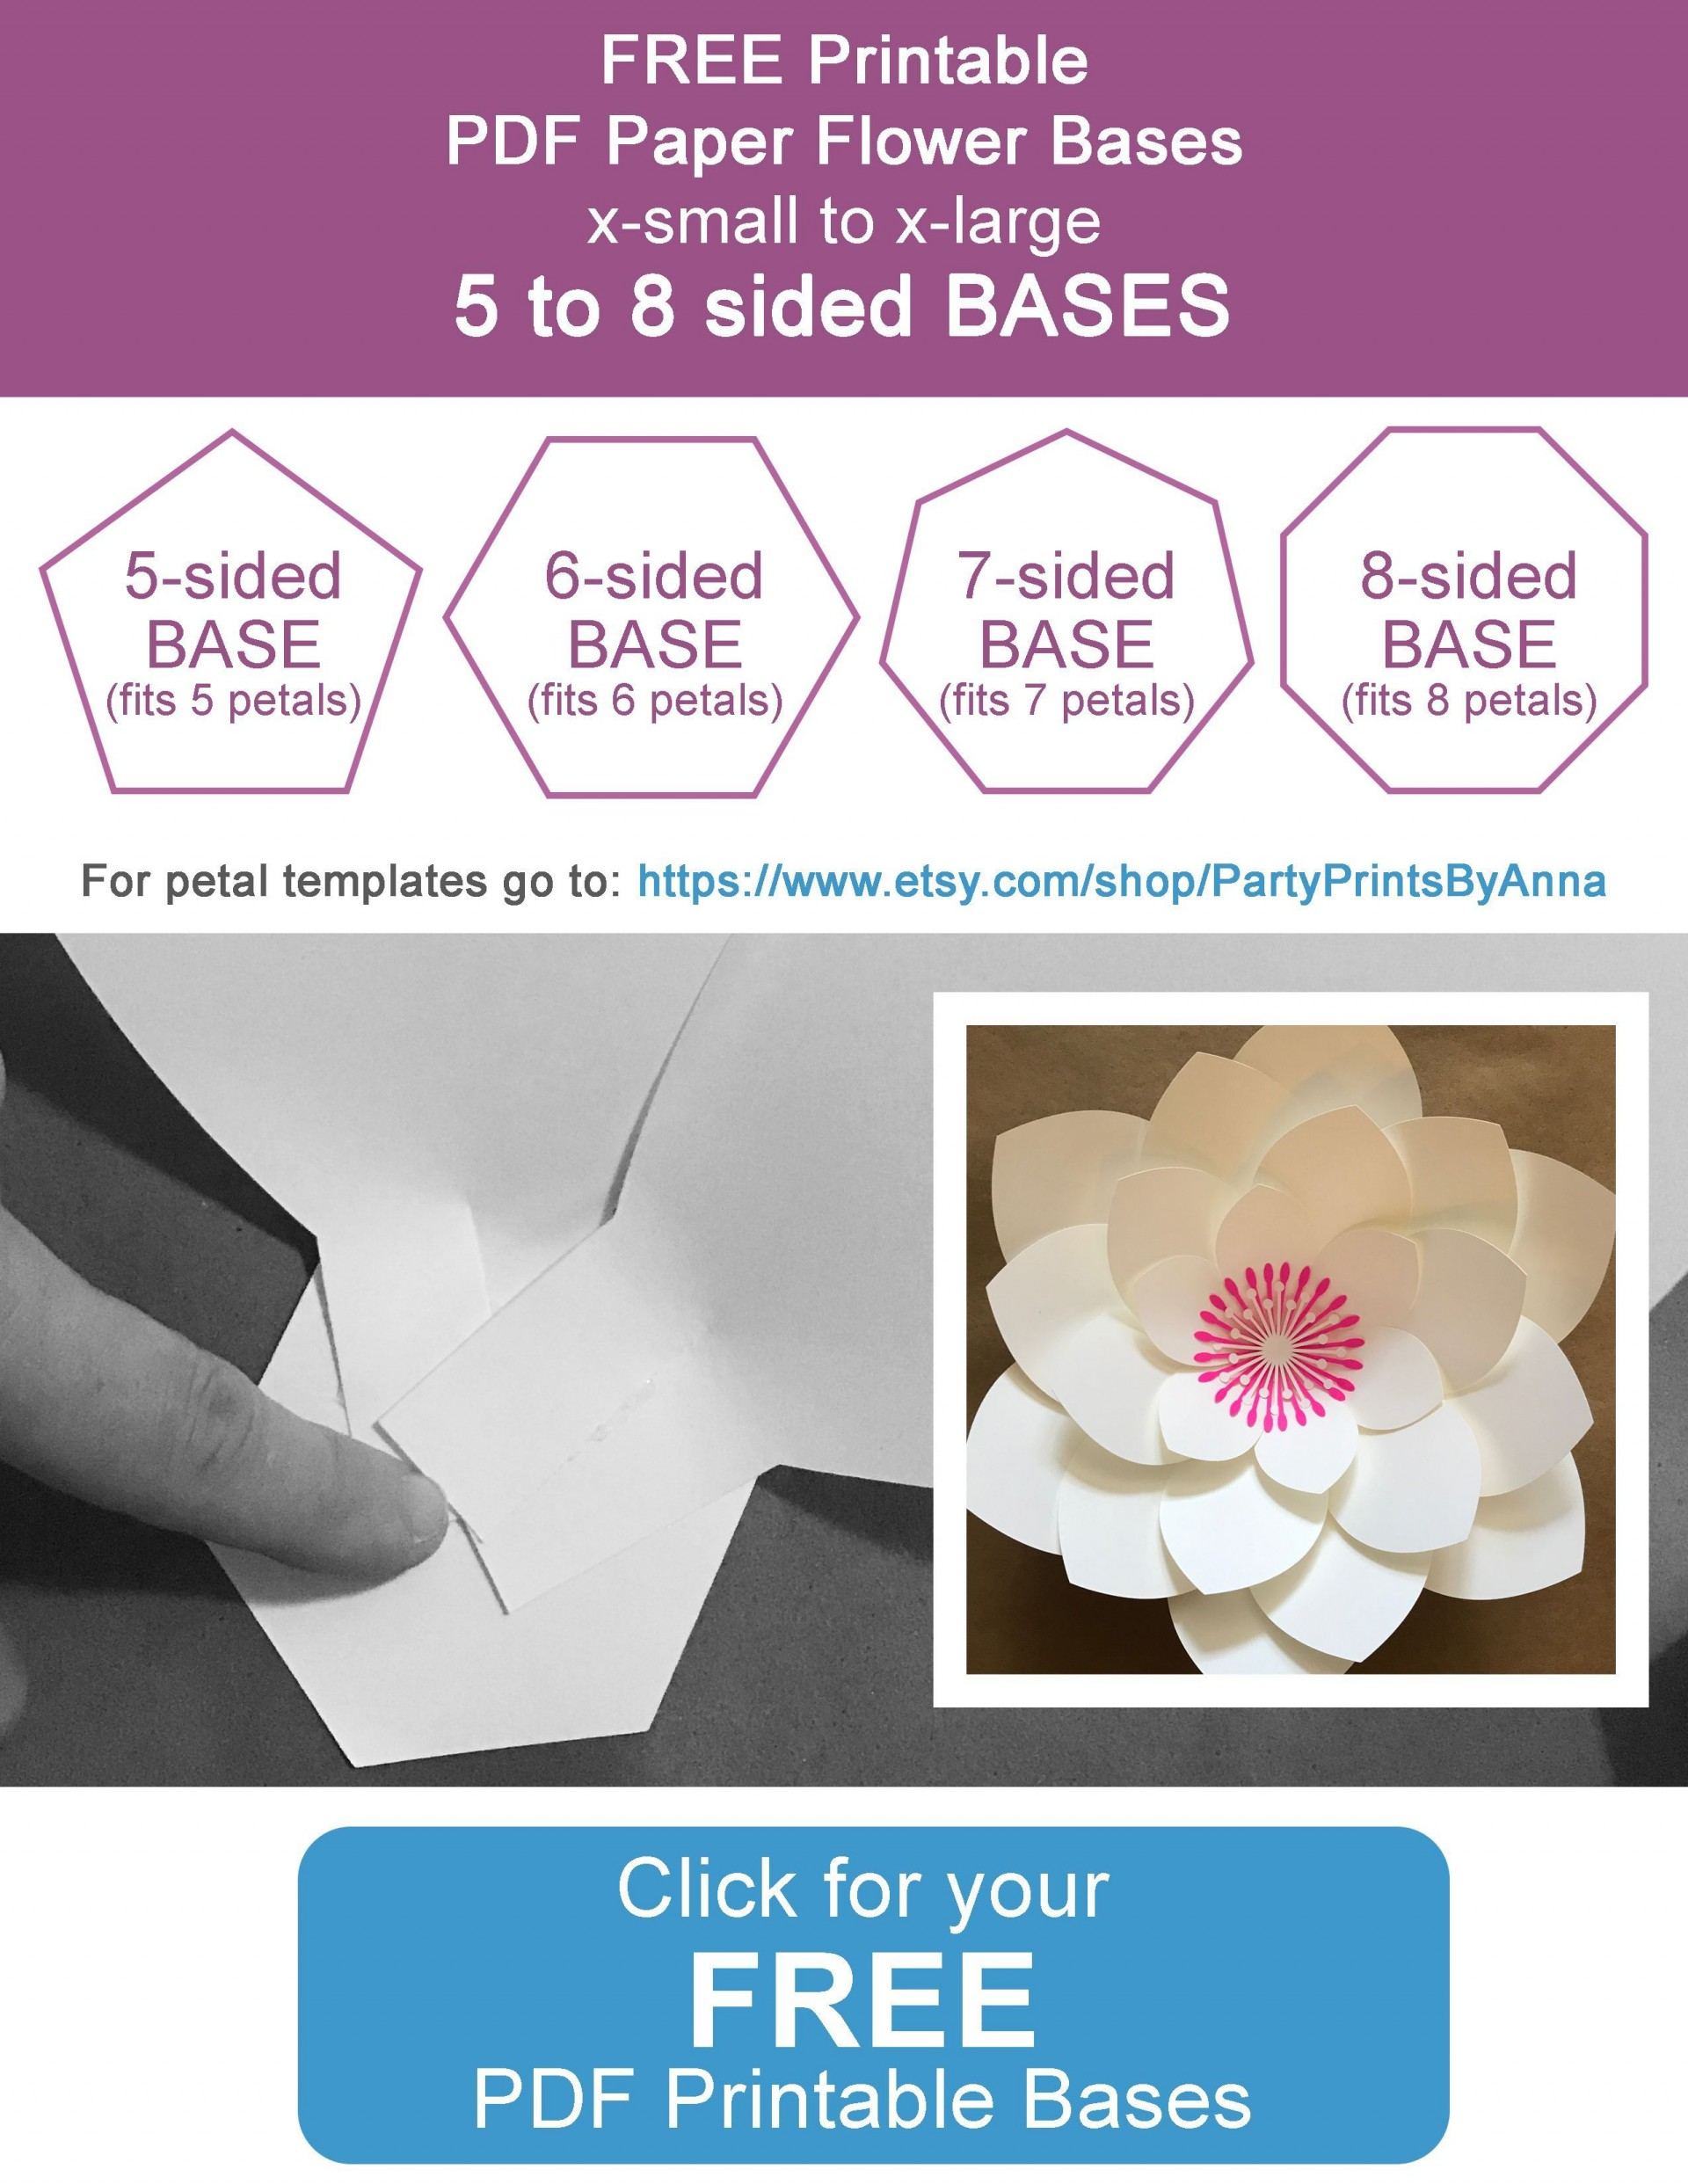 006 Exceptional Free Small Paper Flower Petal Template Sample  Templates1920